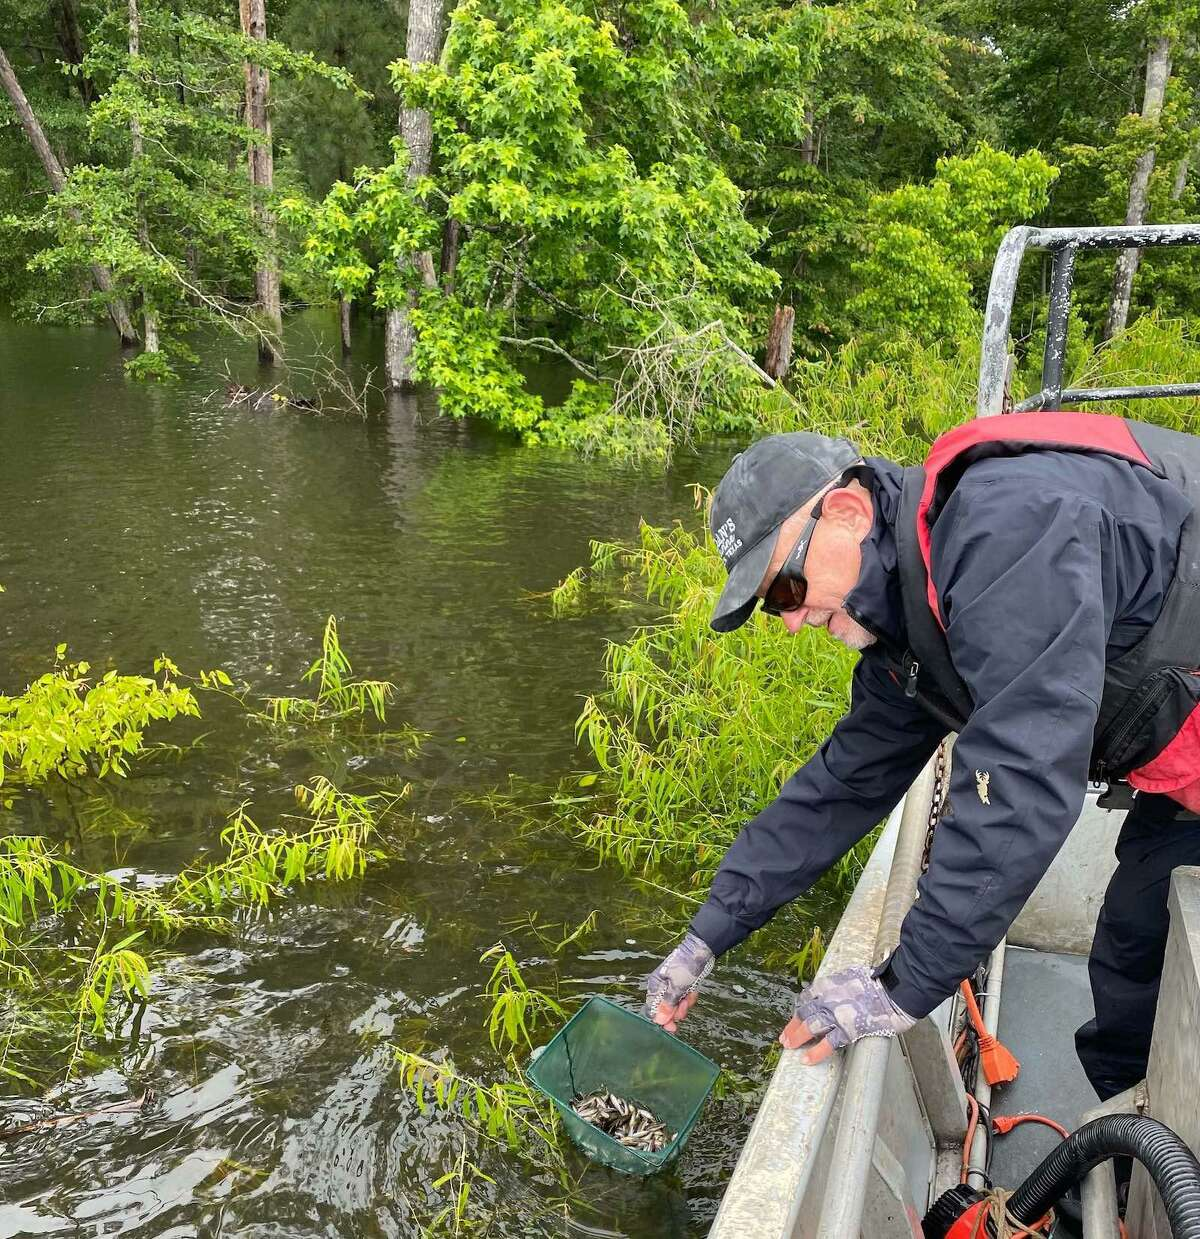 In coming weeks, Texas Parks and Wildlife inland fisheries crews will be stocking numerous lakes with Florida bass fingerlings produced by state hatcheries this spring. Local volunteer and fishing guide Brian Branum recently assisted TPWD crews in a stocking effort at Sam Rayburn. Around 350,000 Floridas were released into the rain-swollen reservoir in early June.